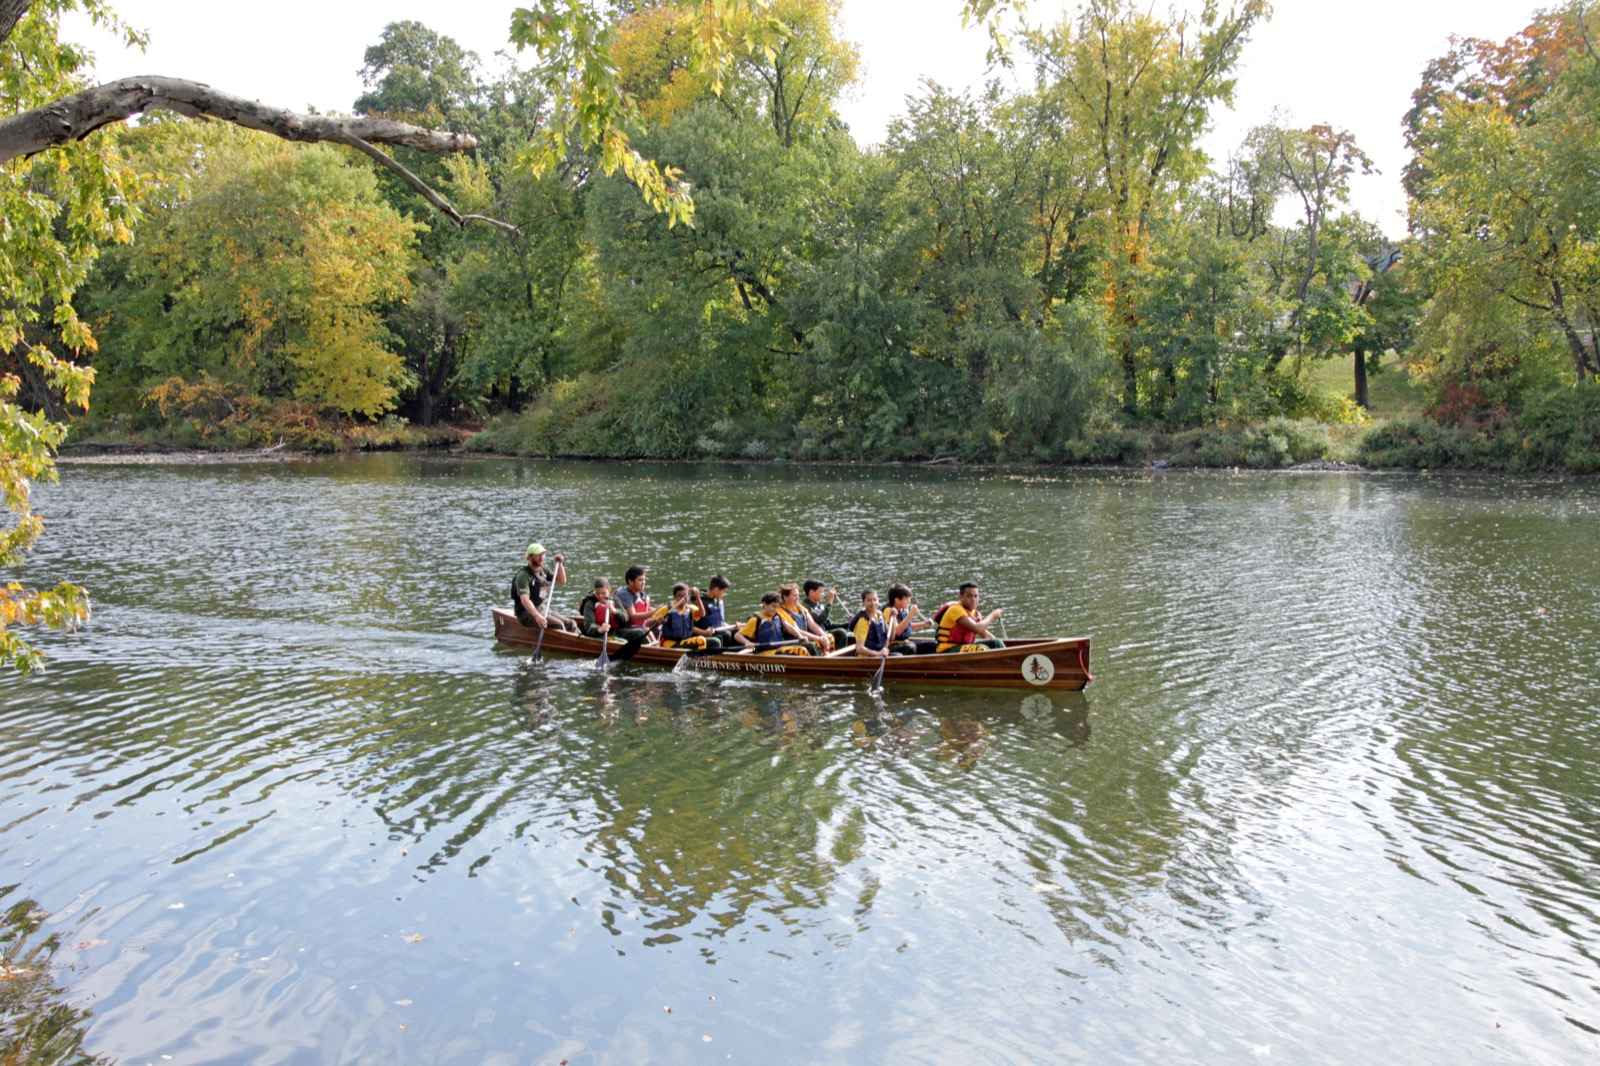 a voyageur canoe paddles along a wide river in late summer